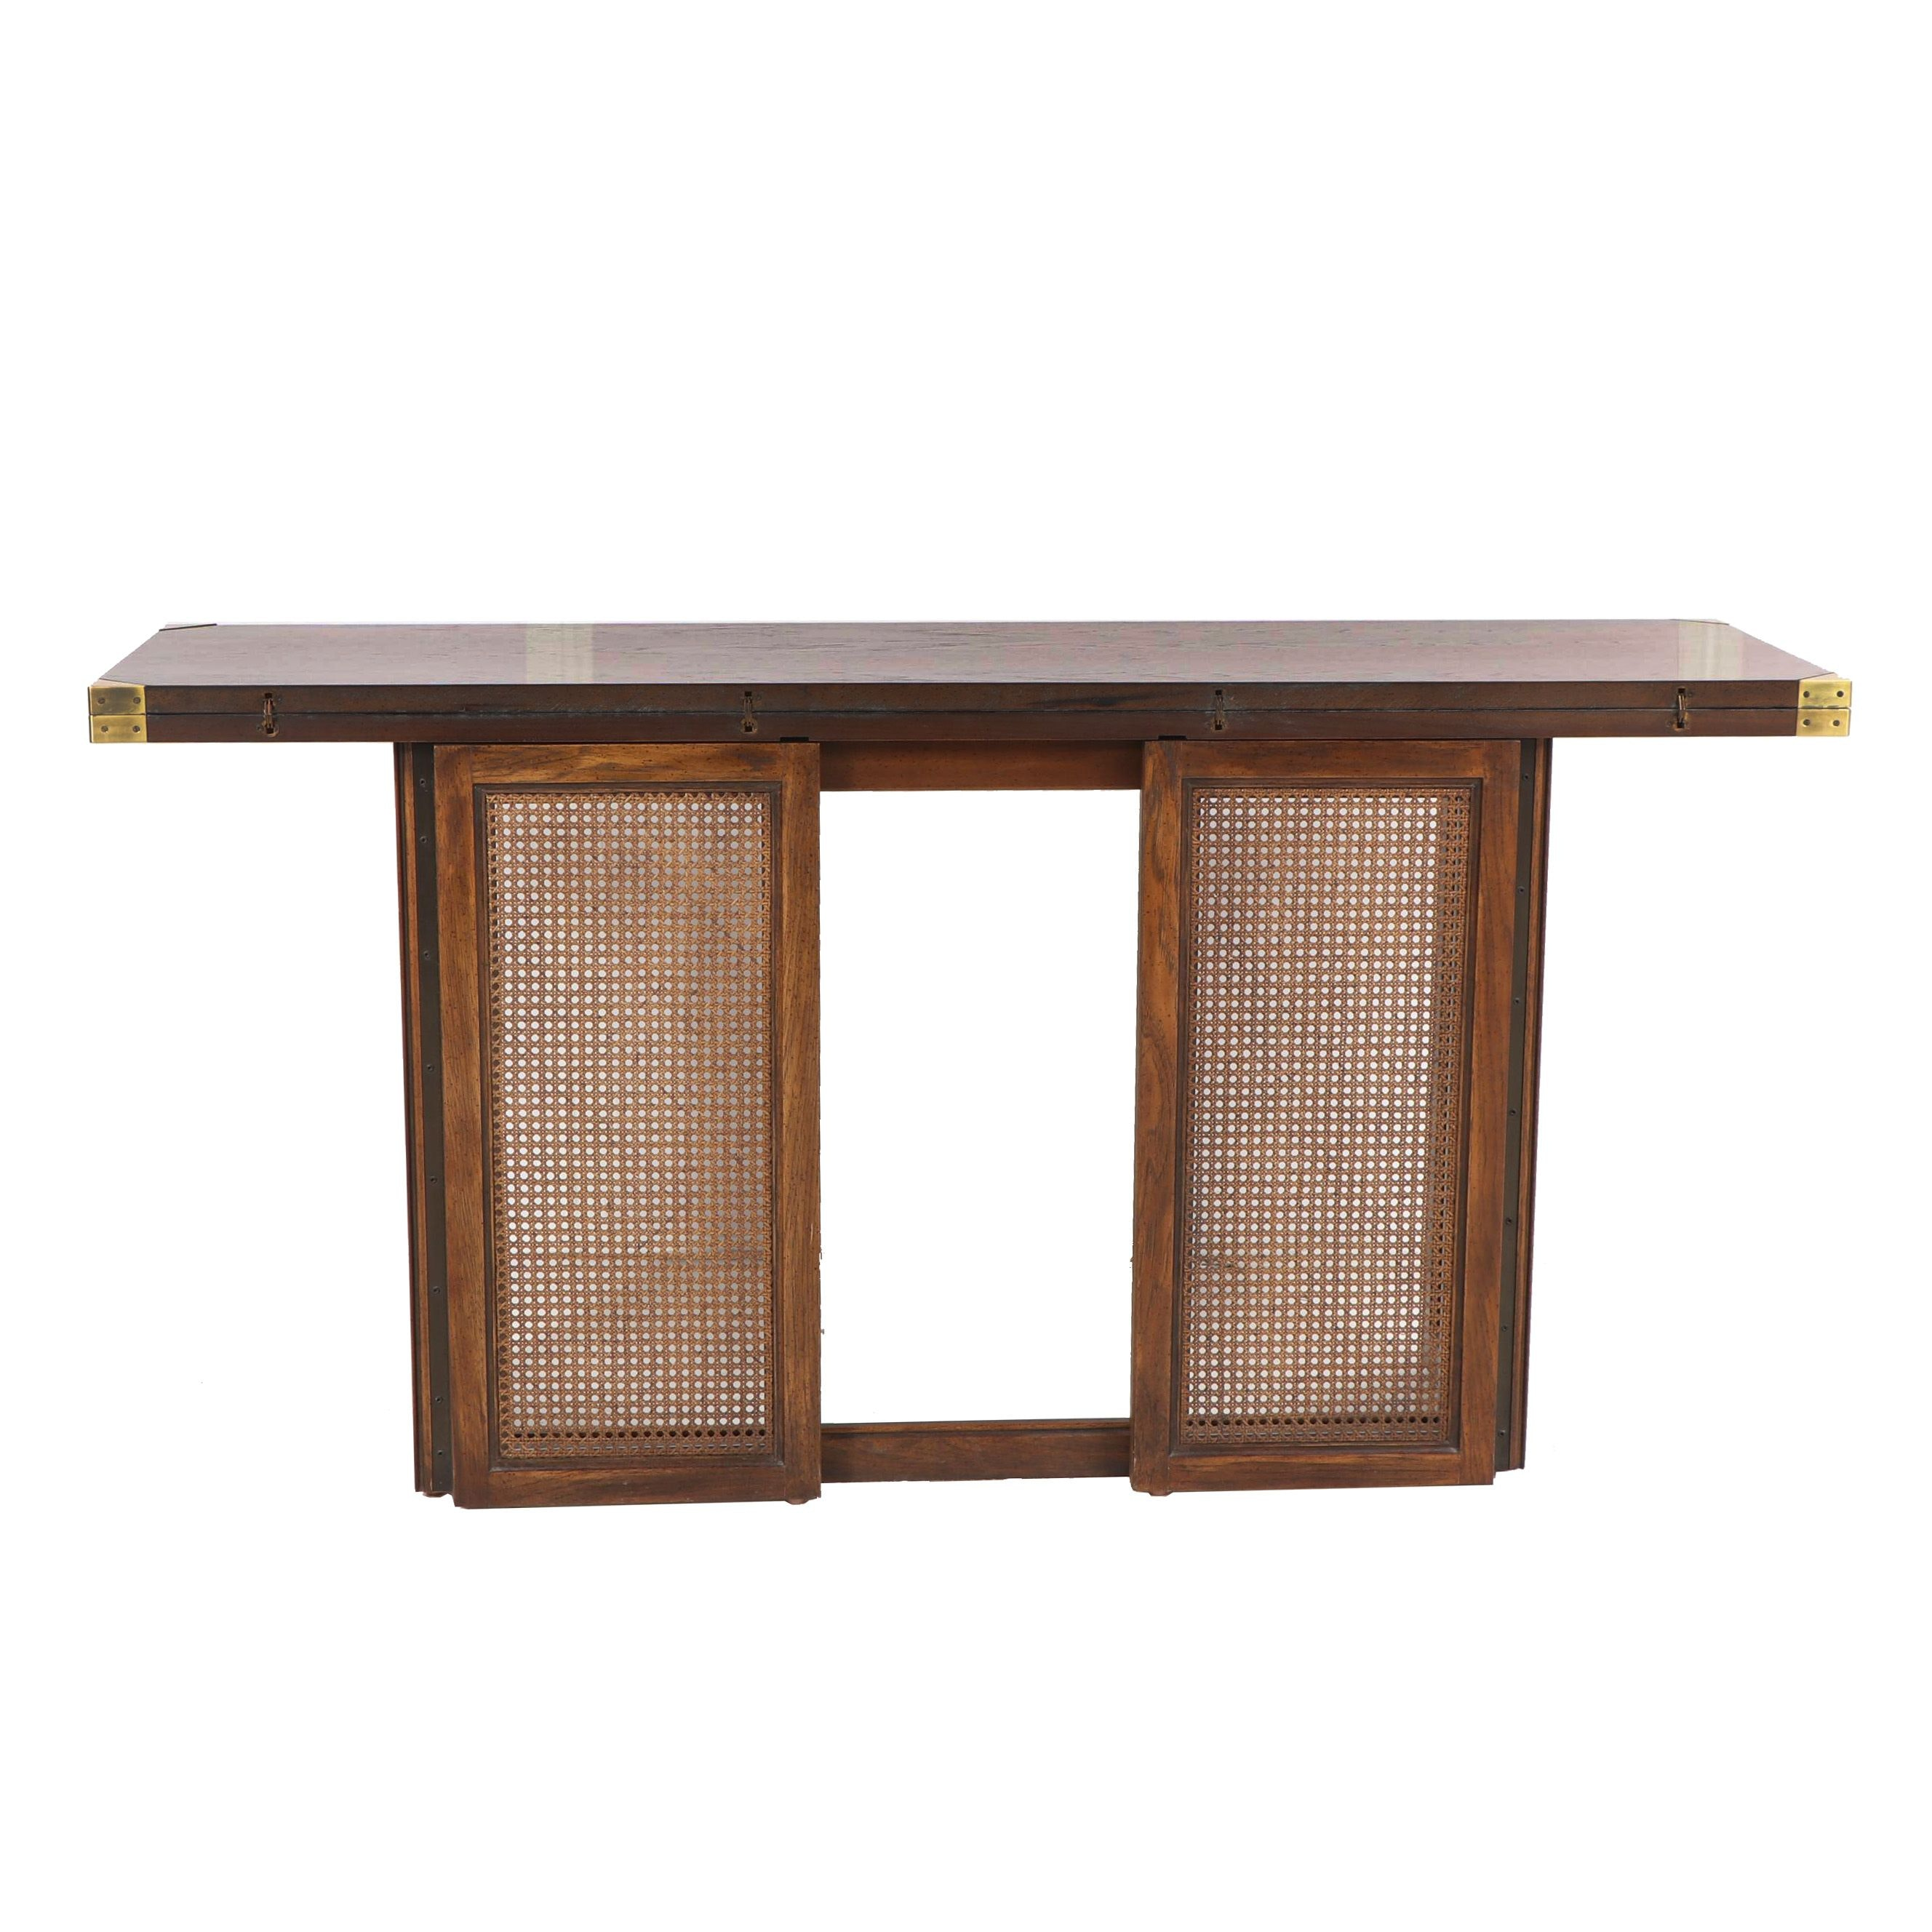 Walnut and Cane Panel Flip-Top Table, Mid-20th Century